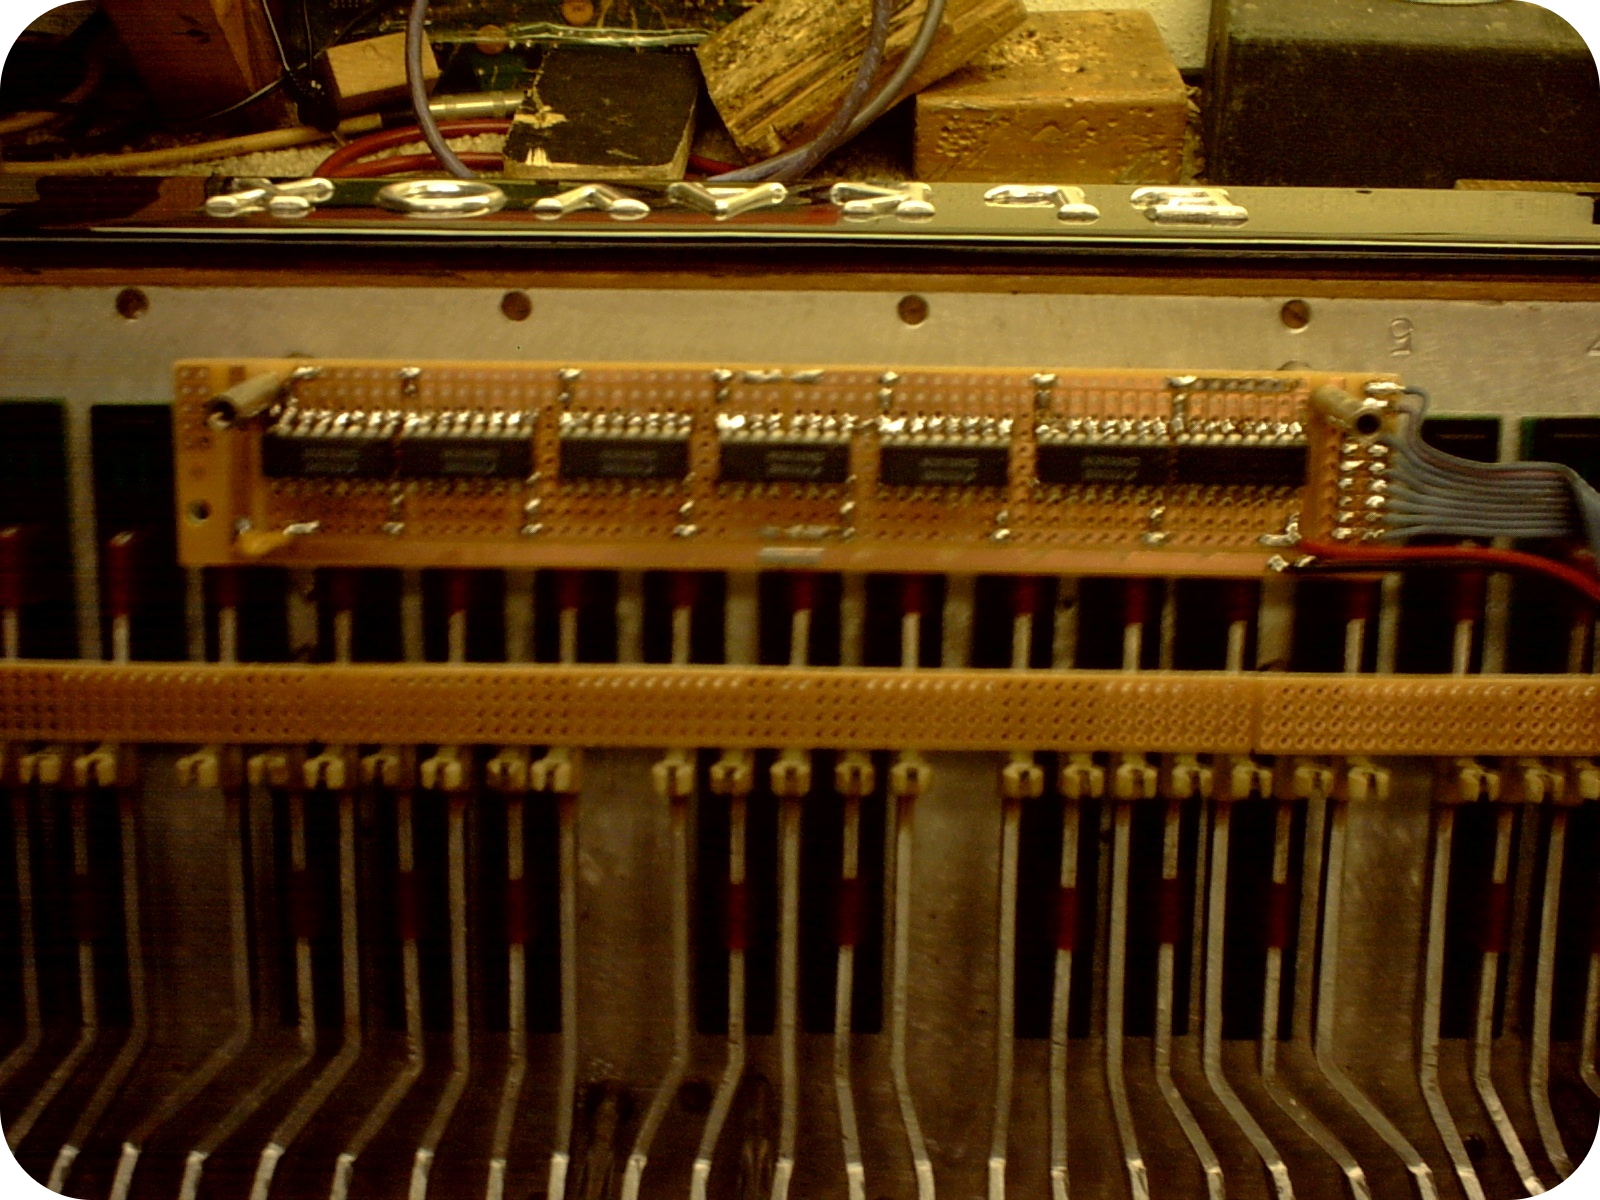 Early Midi Layout1 image